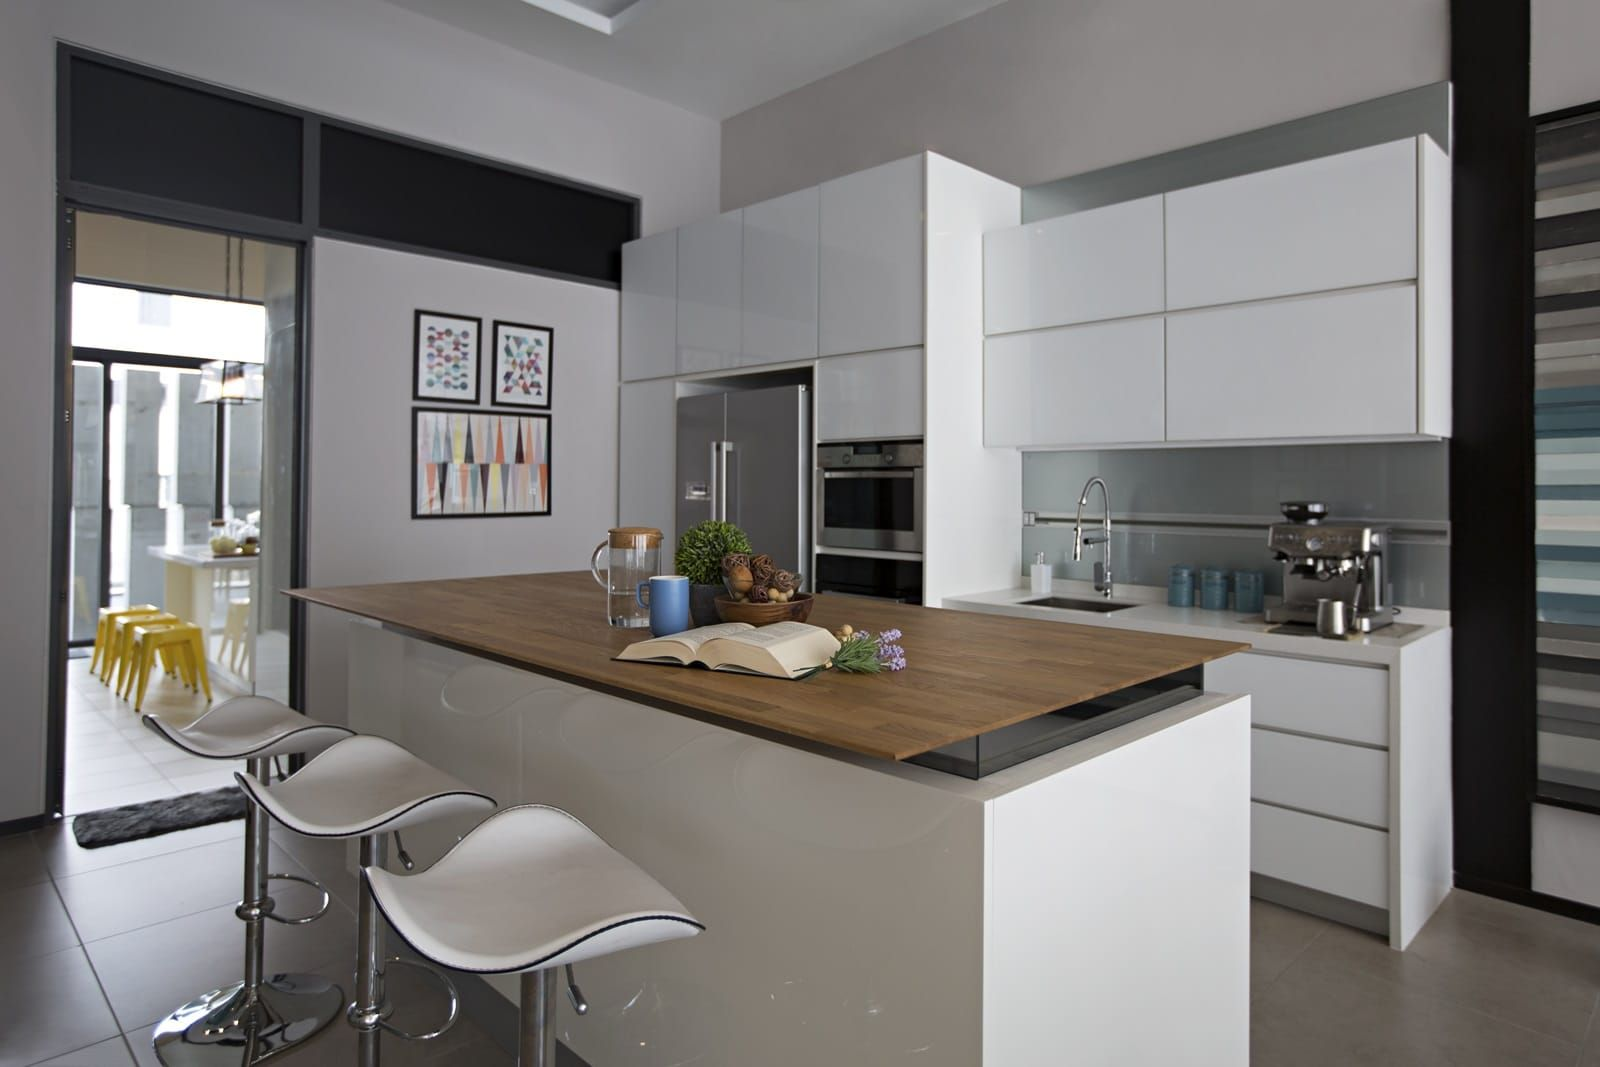 Modern terrace house dry kitchen and island